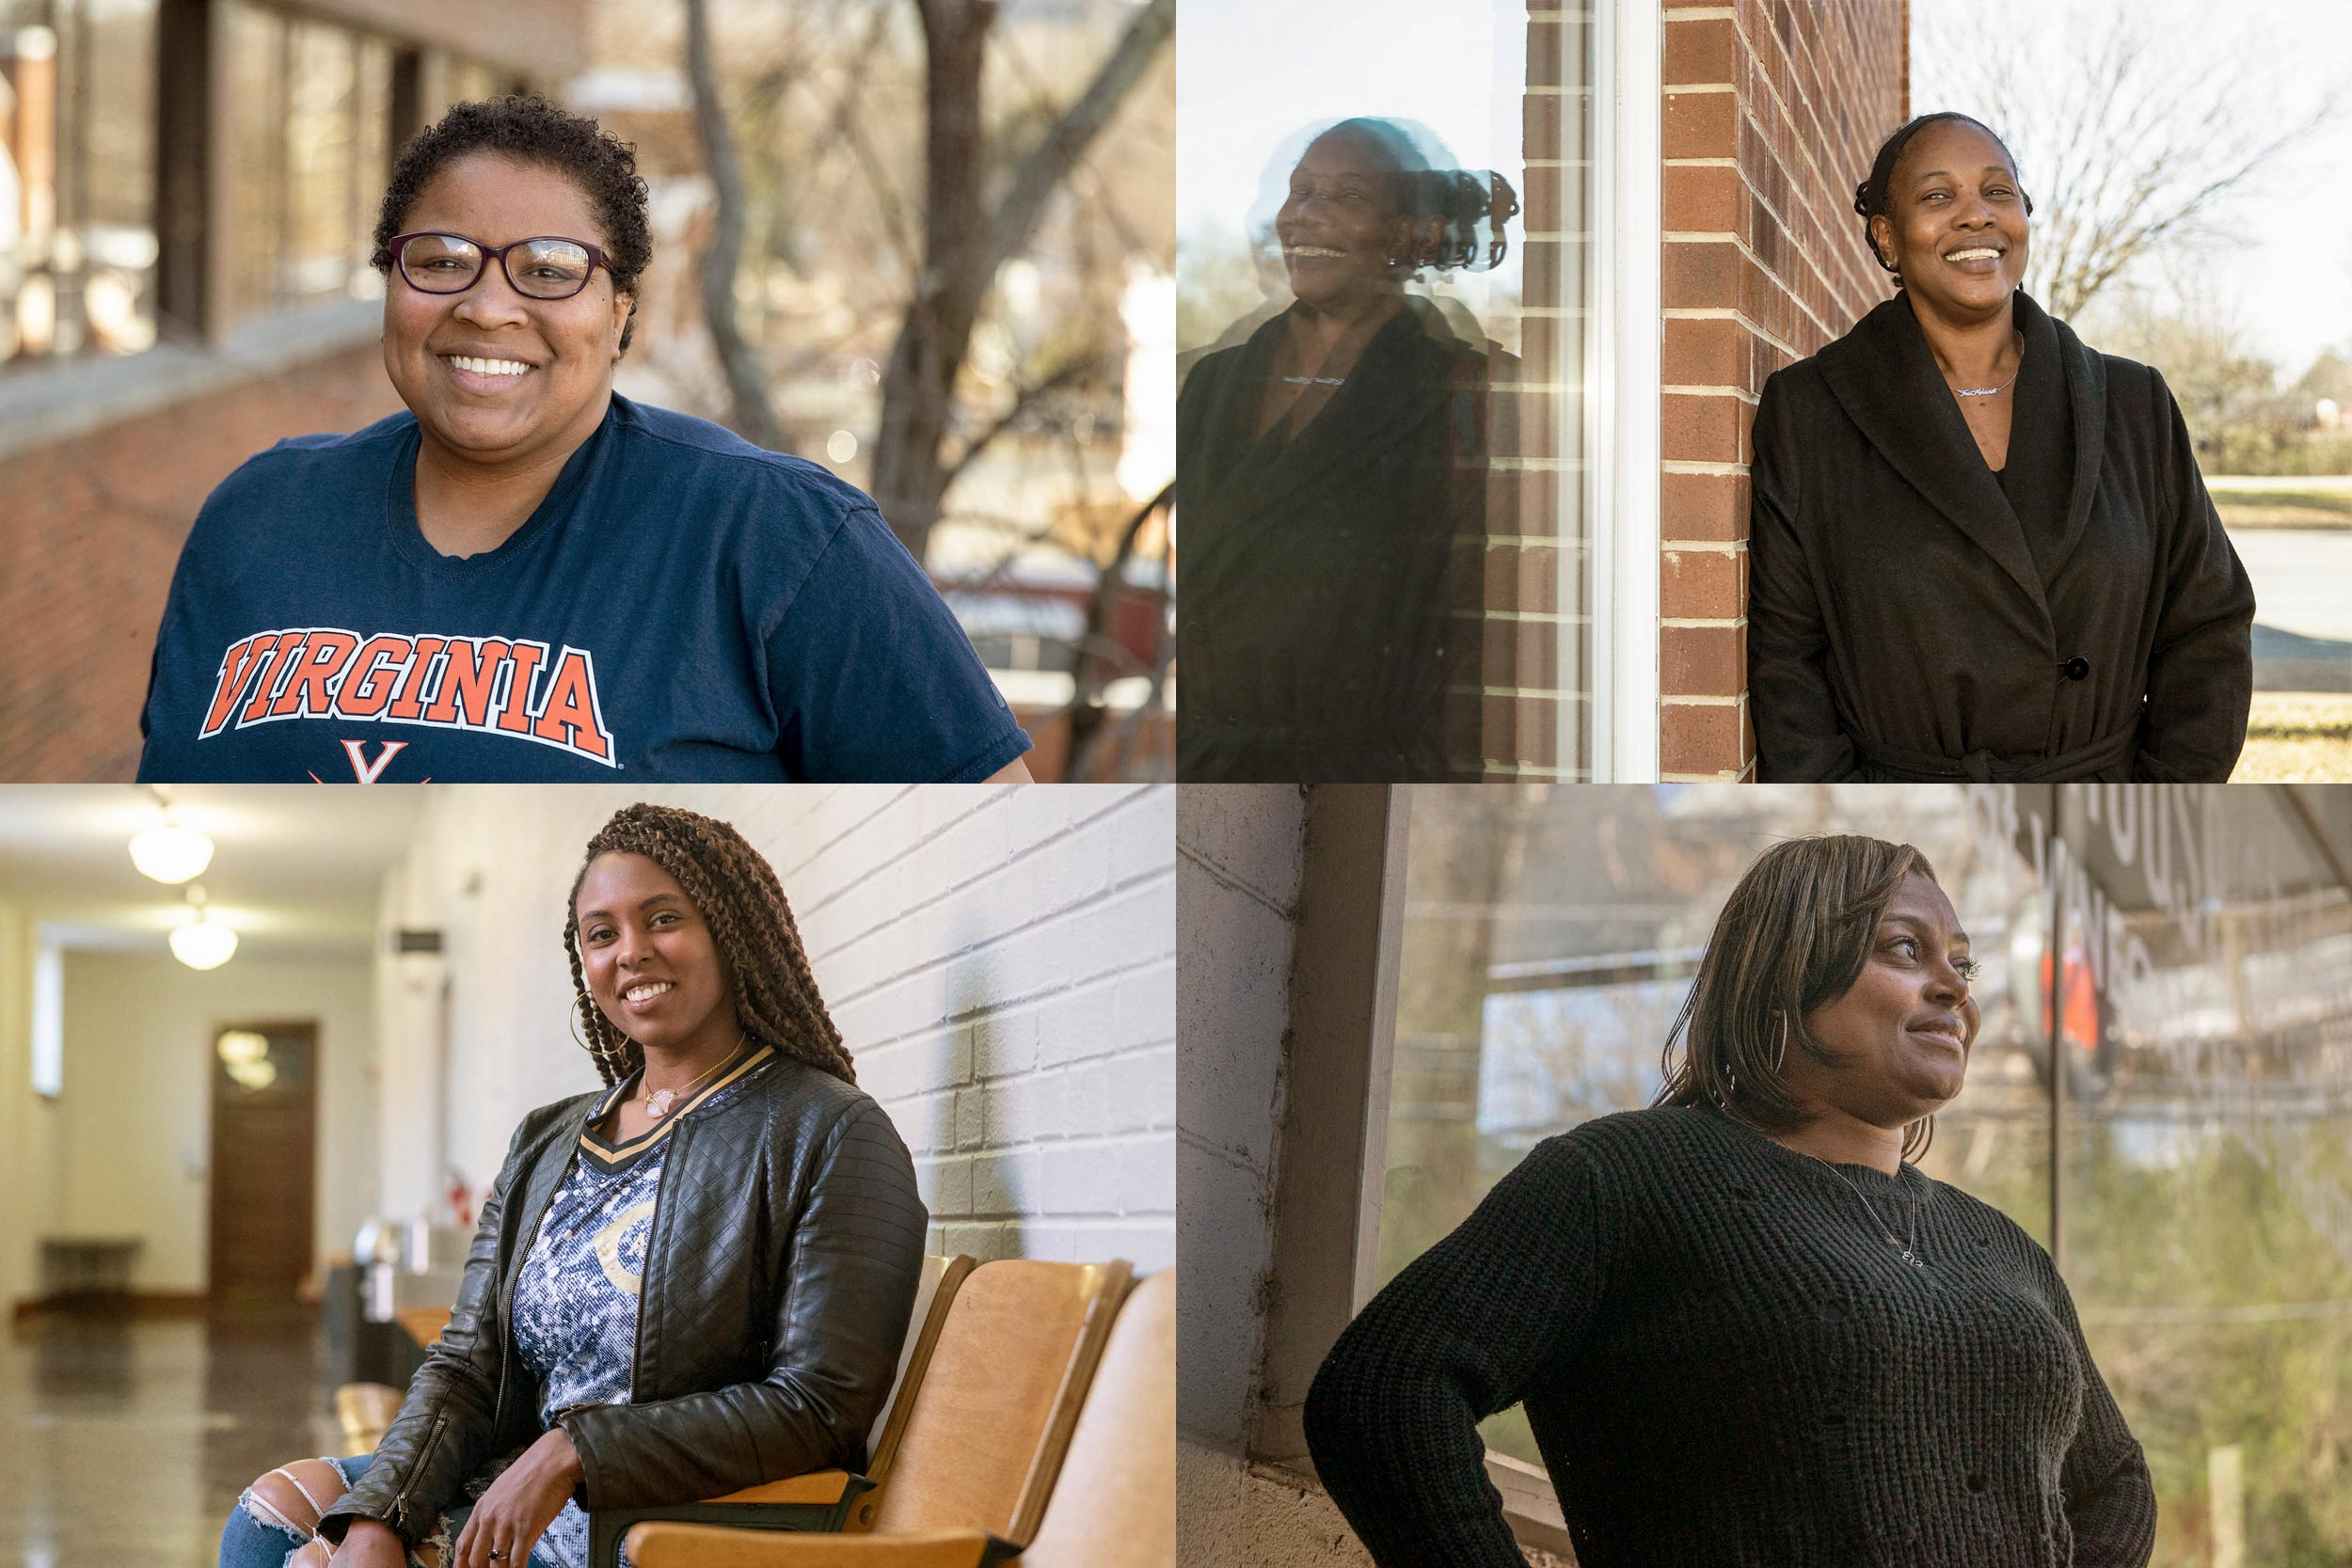 The UVA Equity Center's Community Fellows-in-Residence program brings community leaders to UVA to work on projects addressing racial and economic inequality.